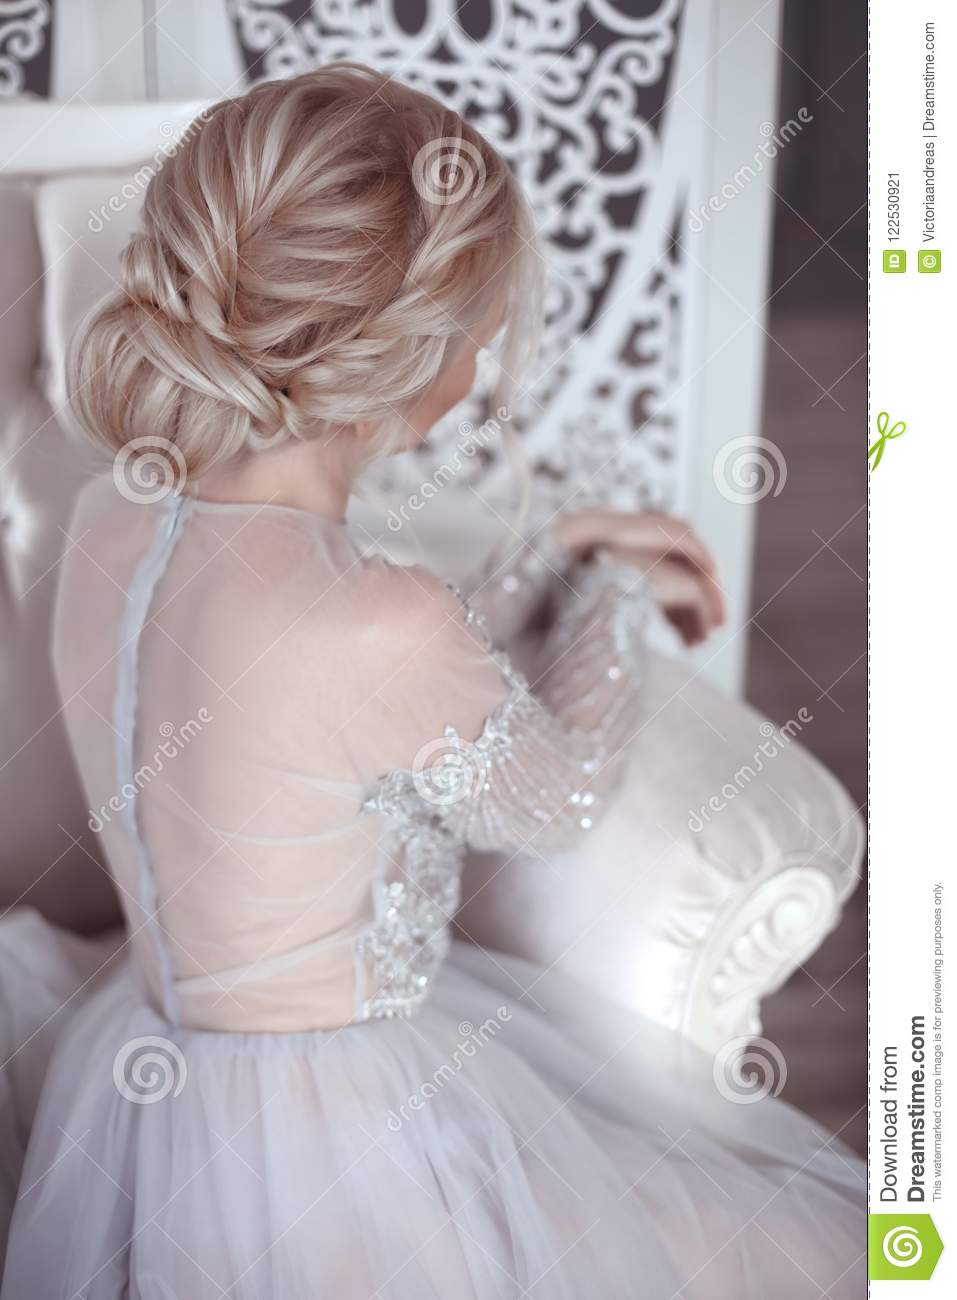 Beauty Wedding Hairstyle Bride Blond Girl With Curly Hair